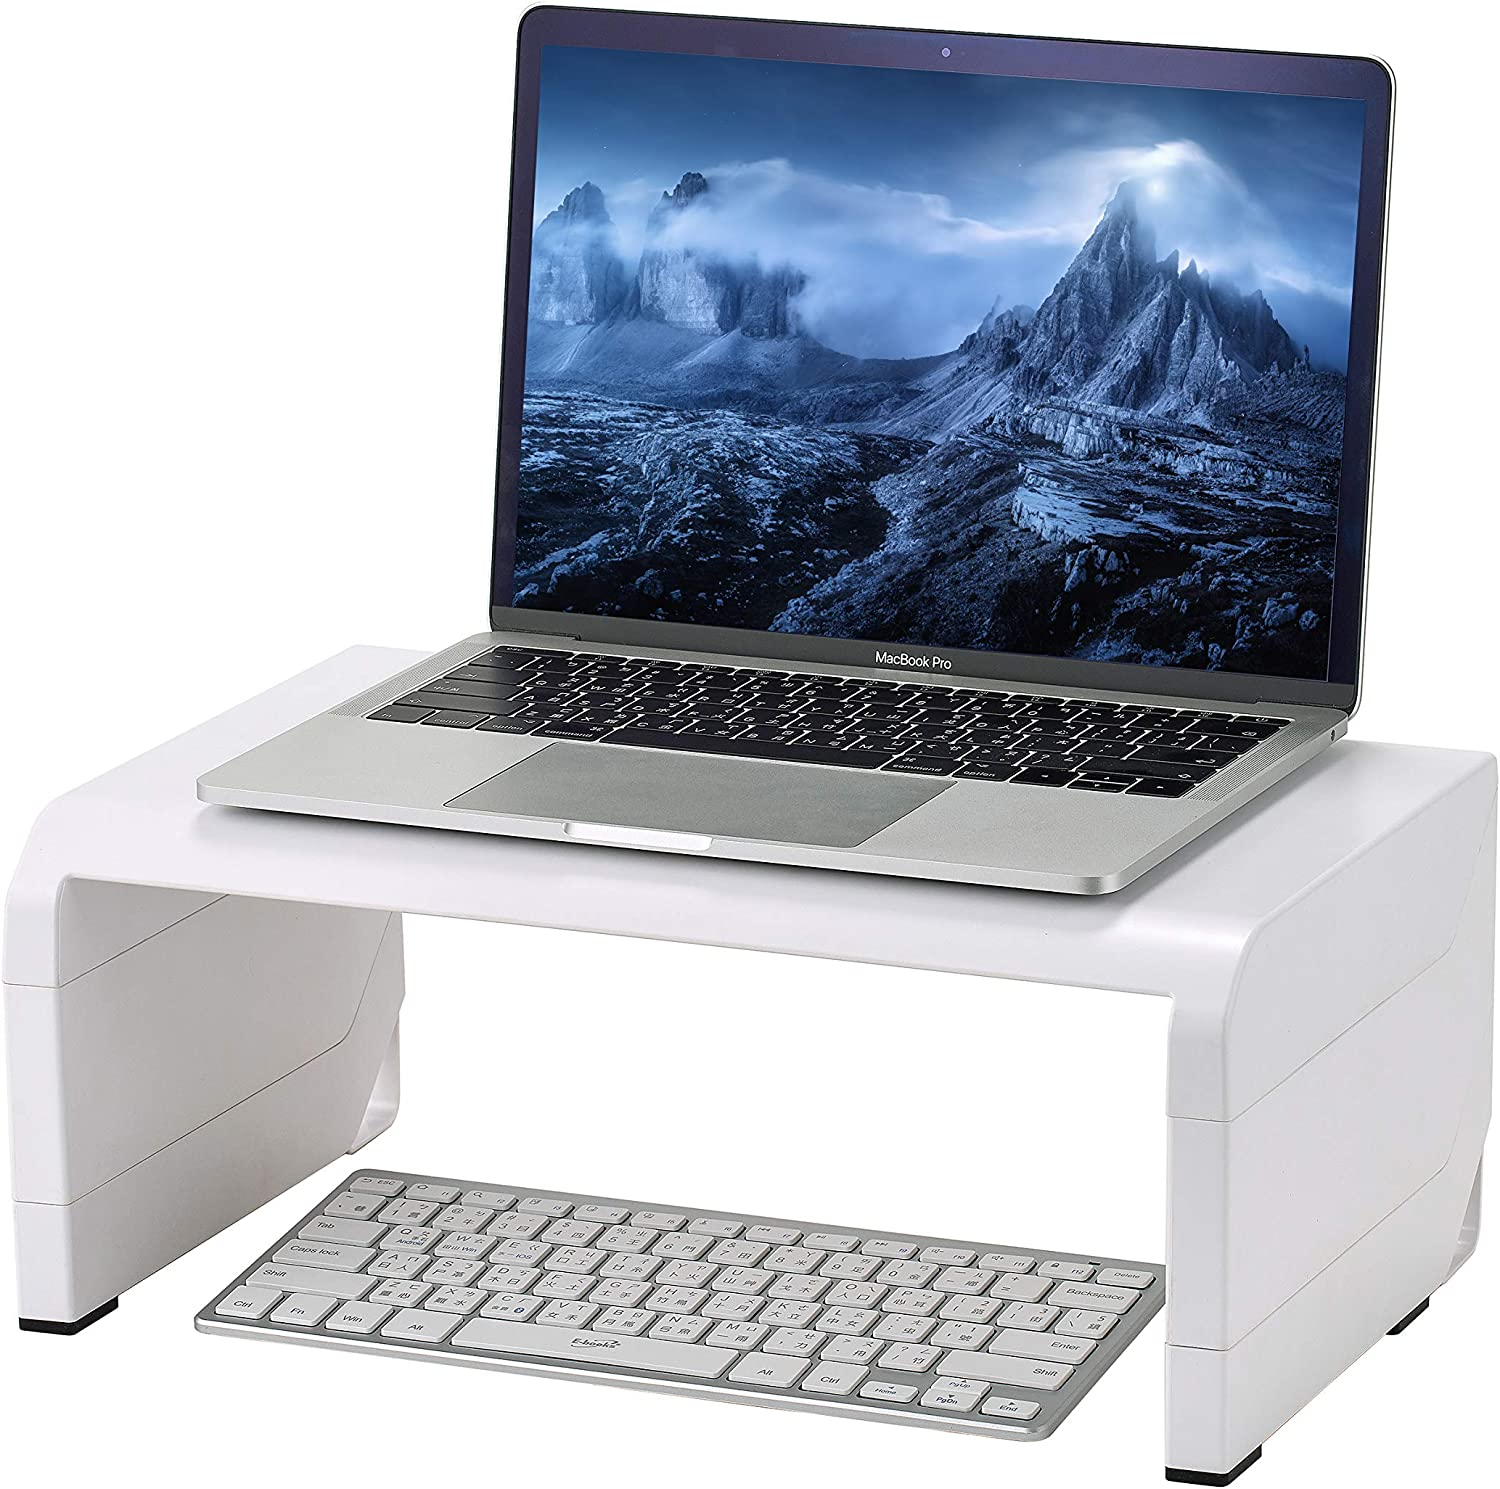 Bostitch Office Konnect Adjustable Monitor Stand Riser, 4 Height Adjustments, Built-in Cable Management, Rubber Feet - White